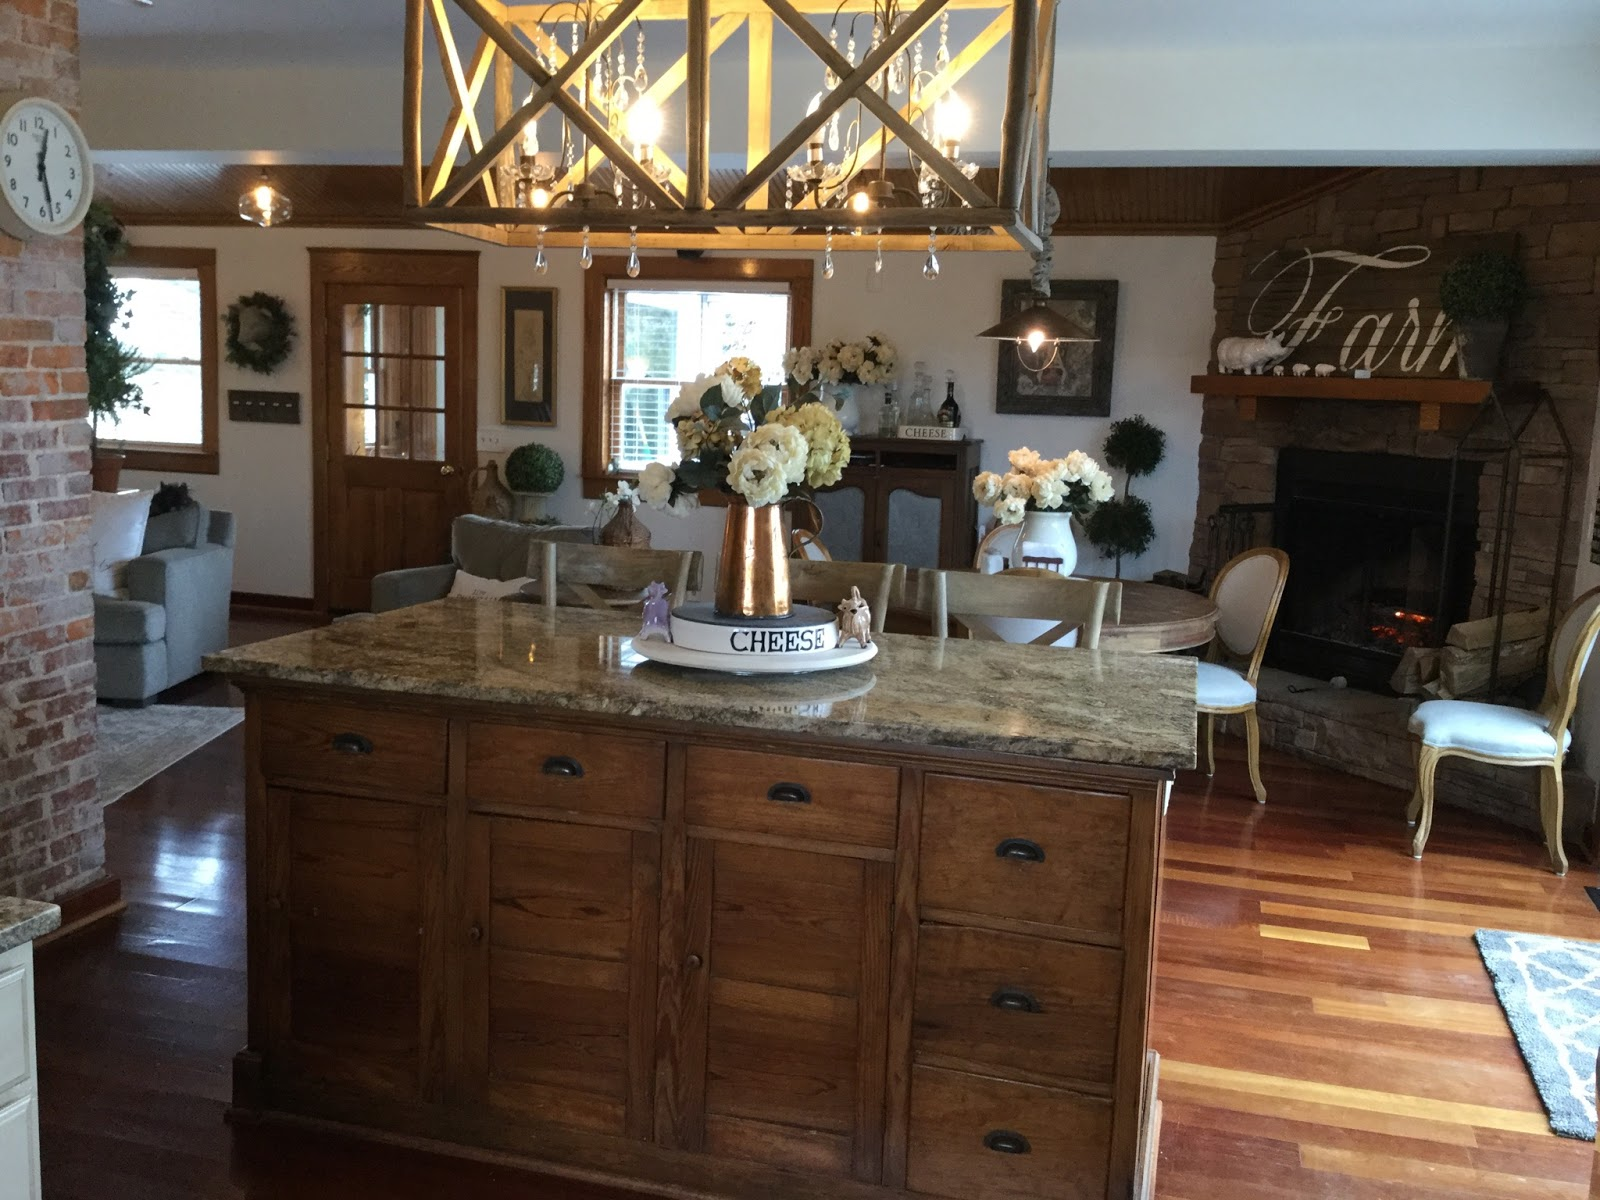 French Hen Farm From Dining Room Tables Kittles Image Source Frenchhenfarmblogspot